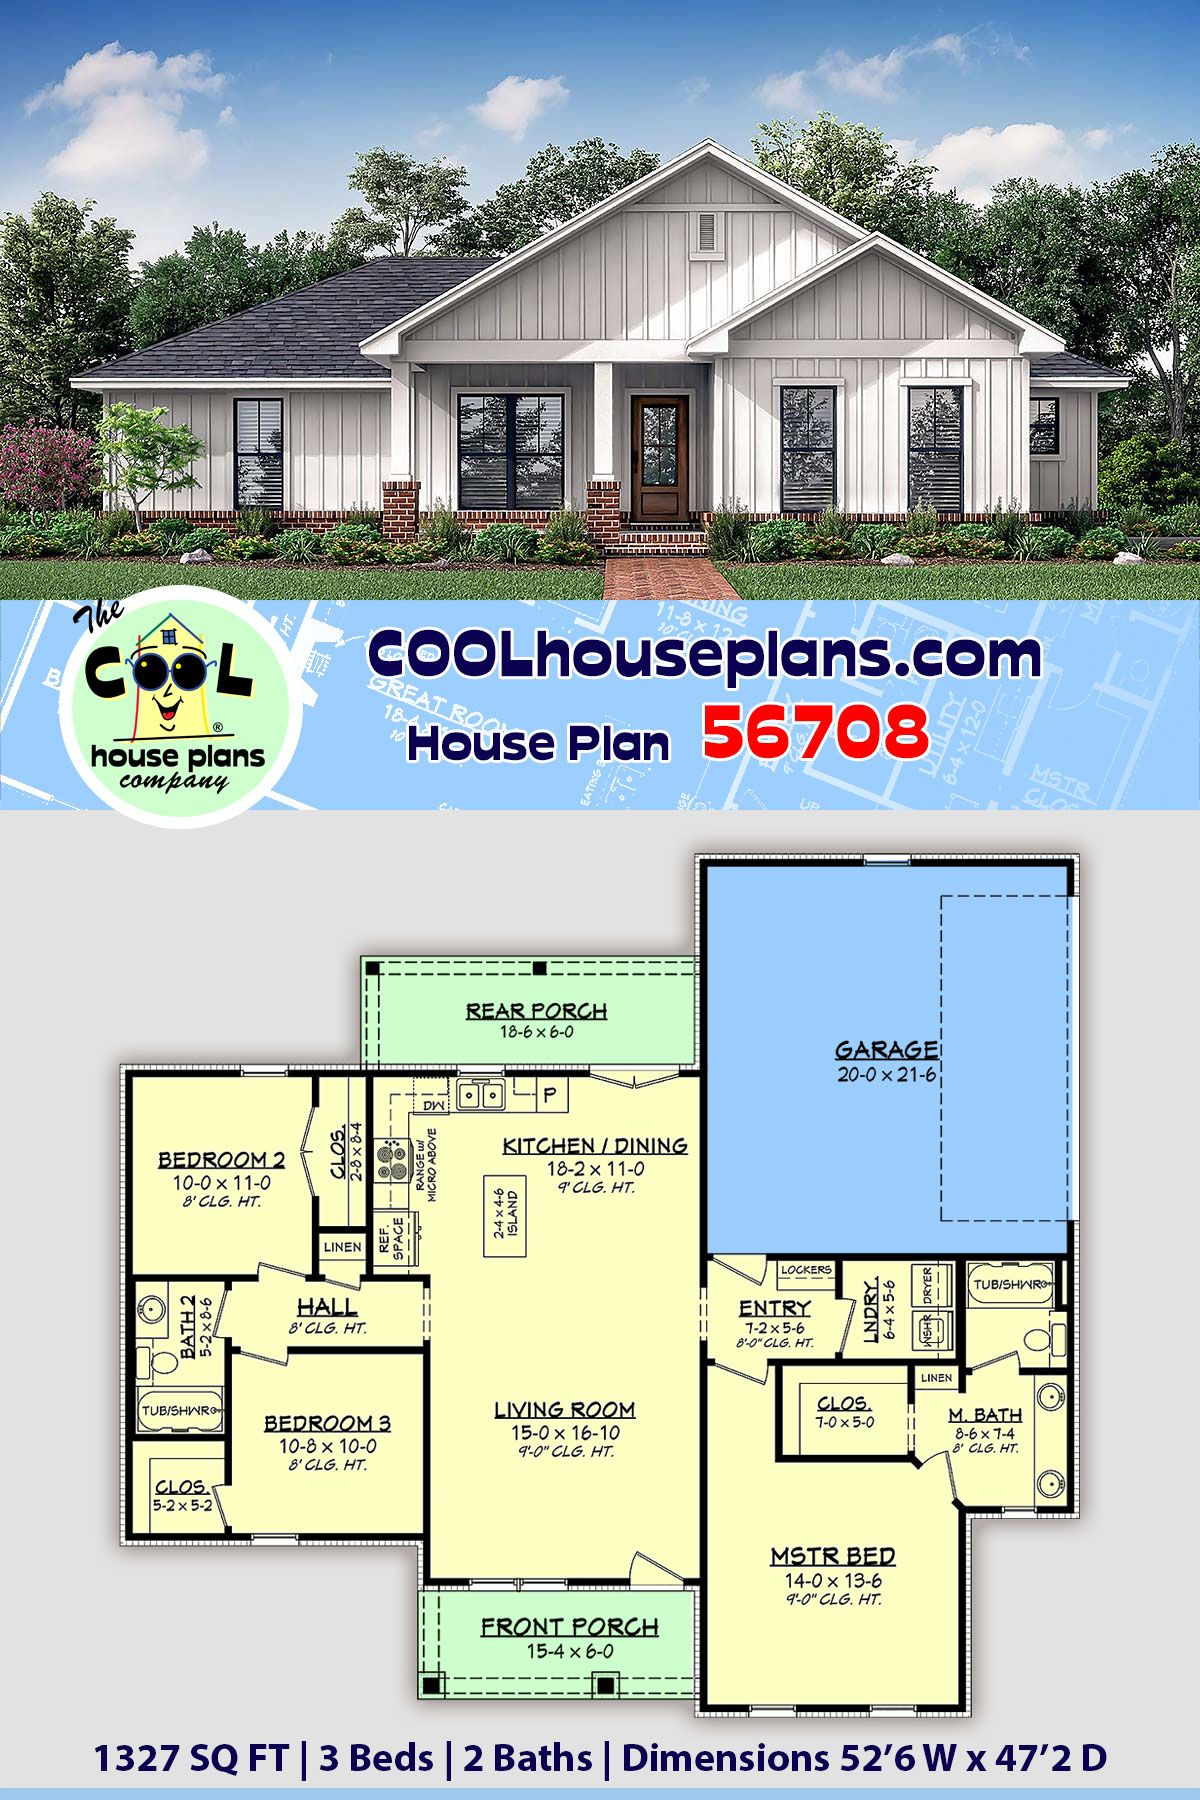 Traditional Style House Plan 56708 With 3 Bed 2 Bath 2 Car Garage Small Country Homes Building Plans House Country House Plans